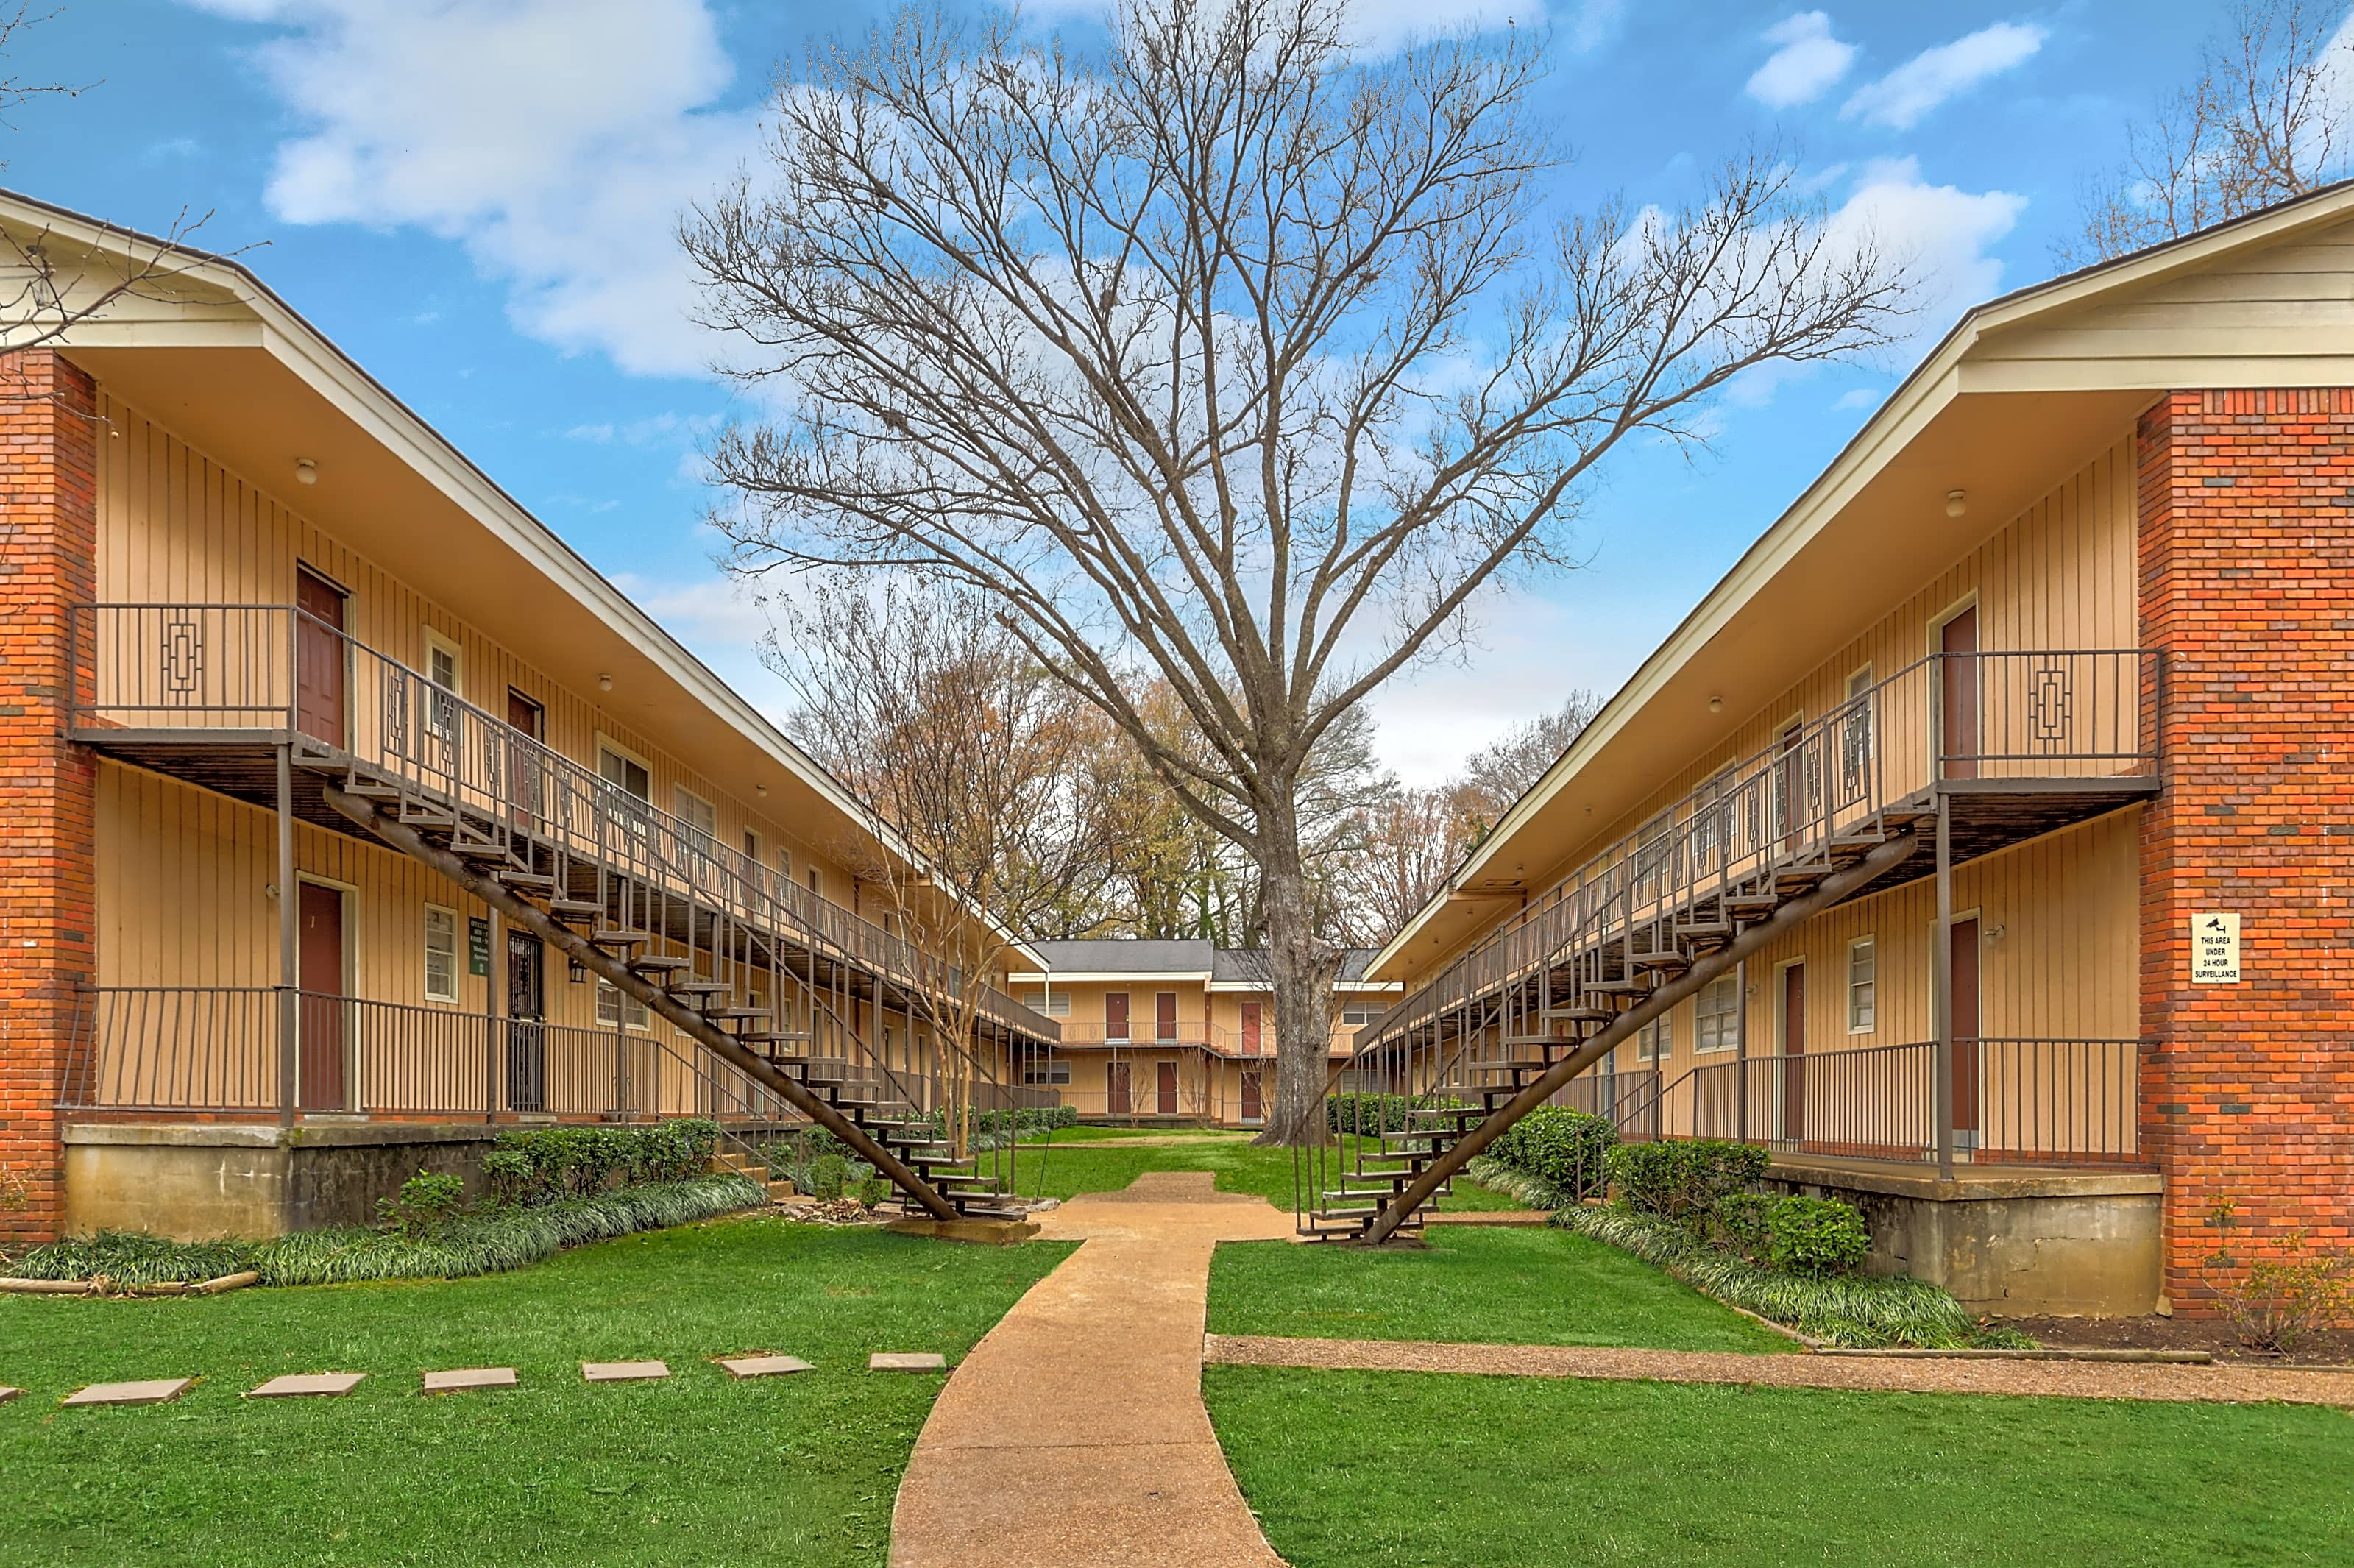 Apartments Near Rhodes Merton Manor Apartments for Rhodes College Students in Memphis, TN